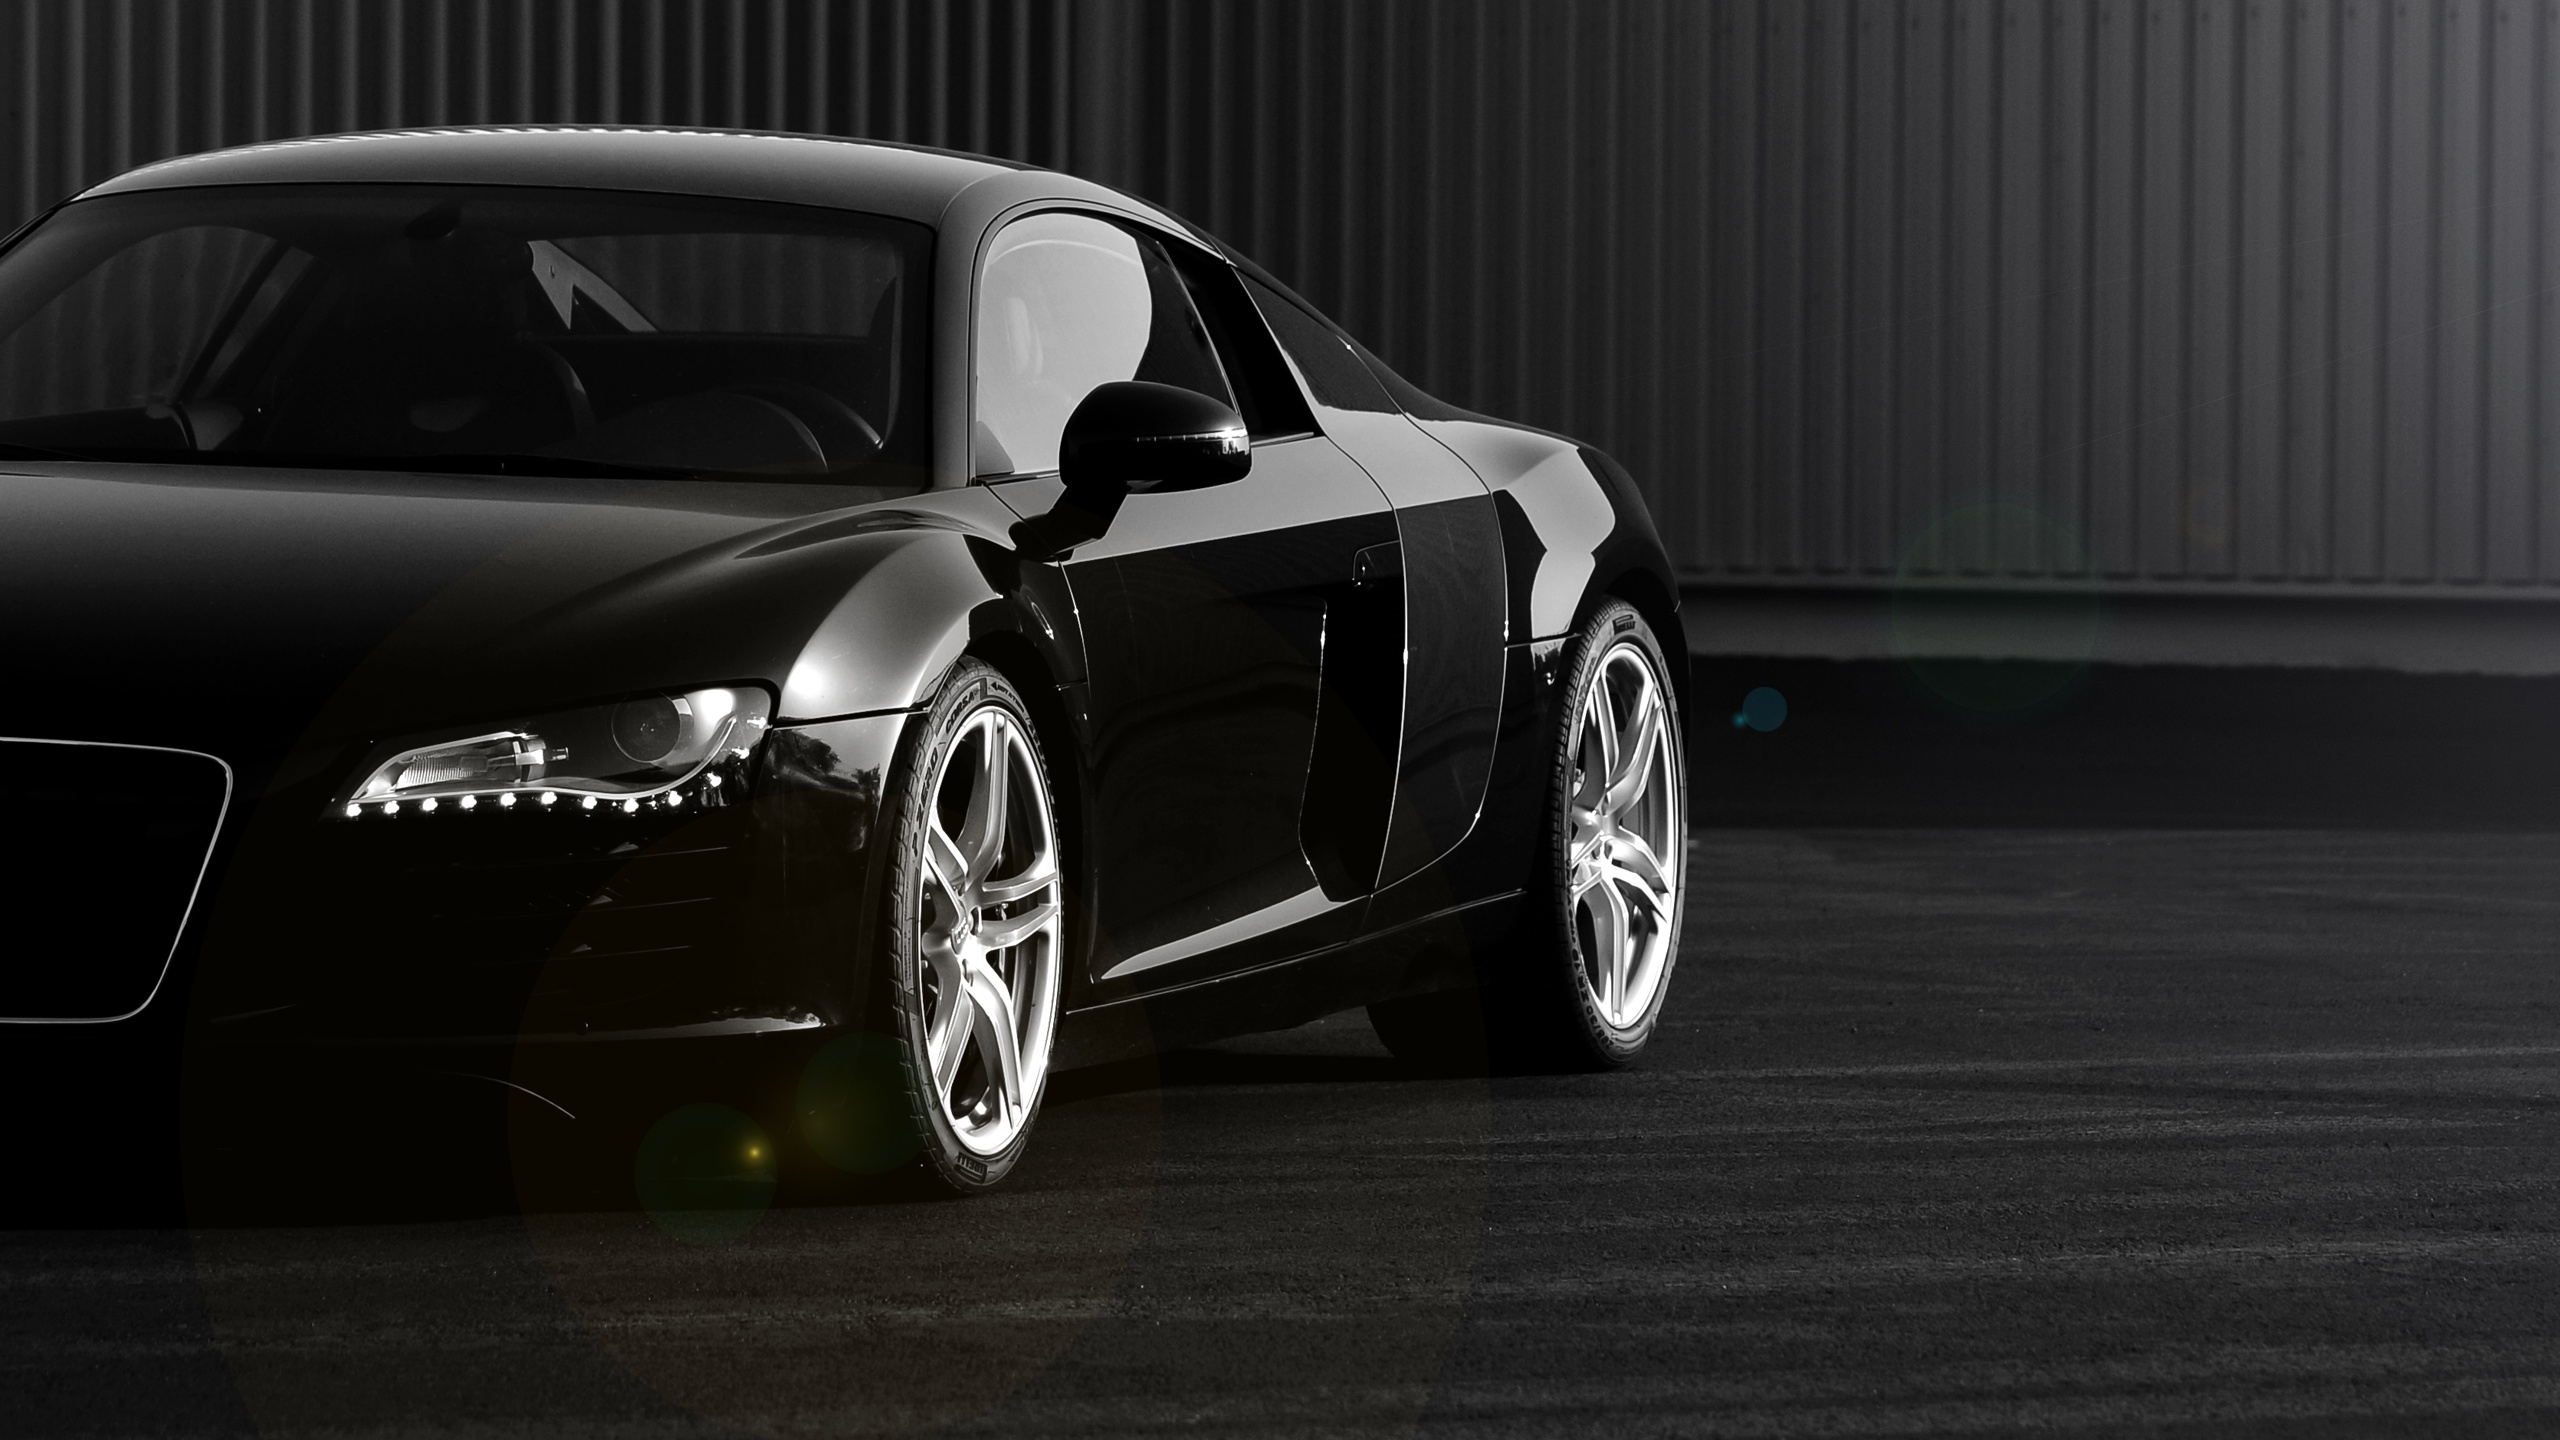 2560x1440 Black Audi R8 Section Desktop Pc And Mac Wallpaper